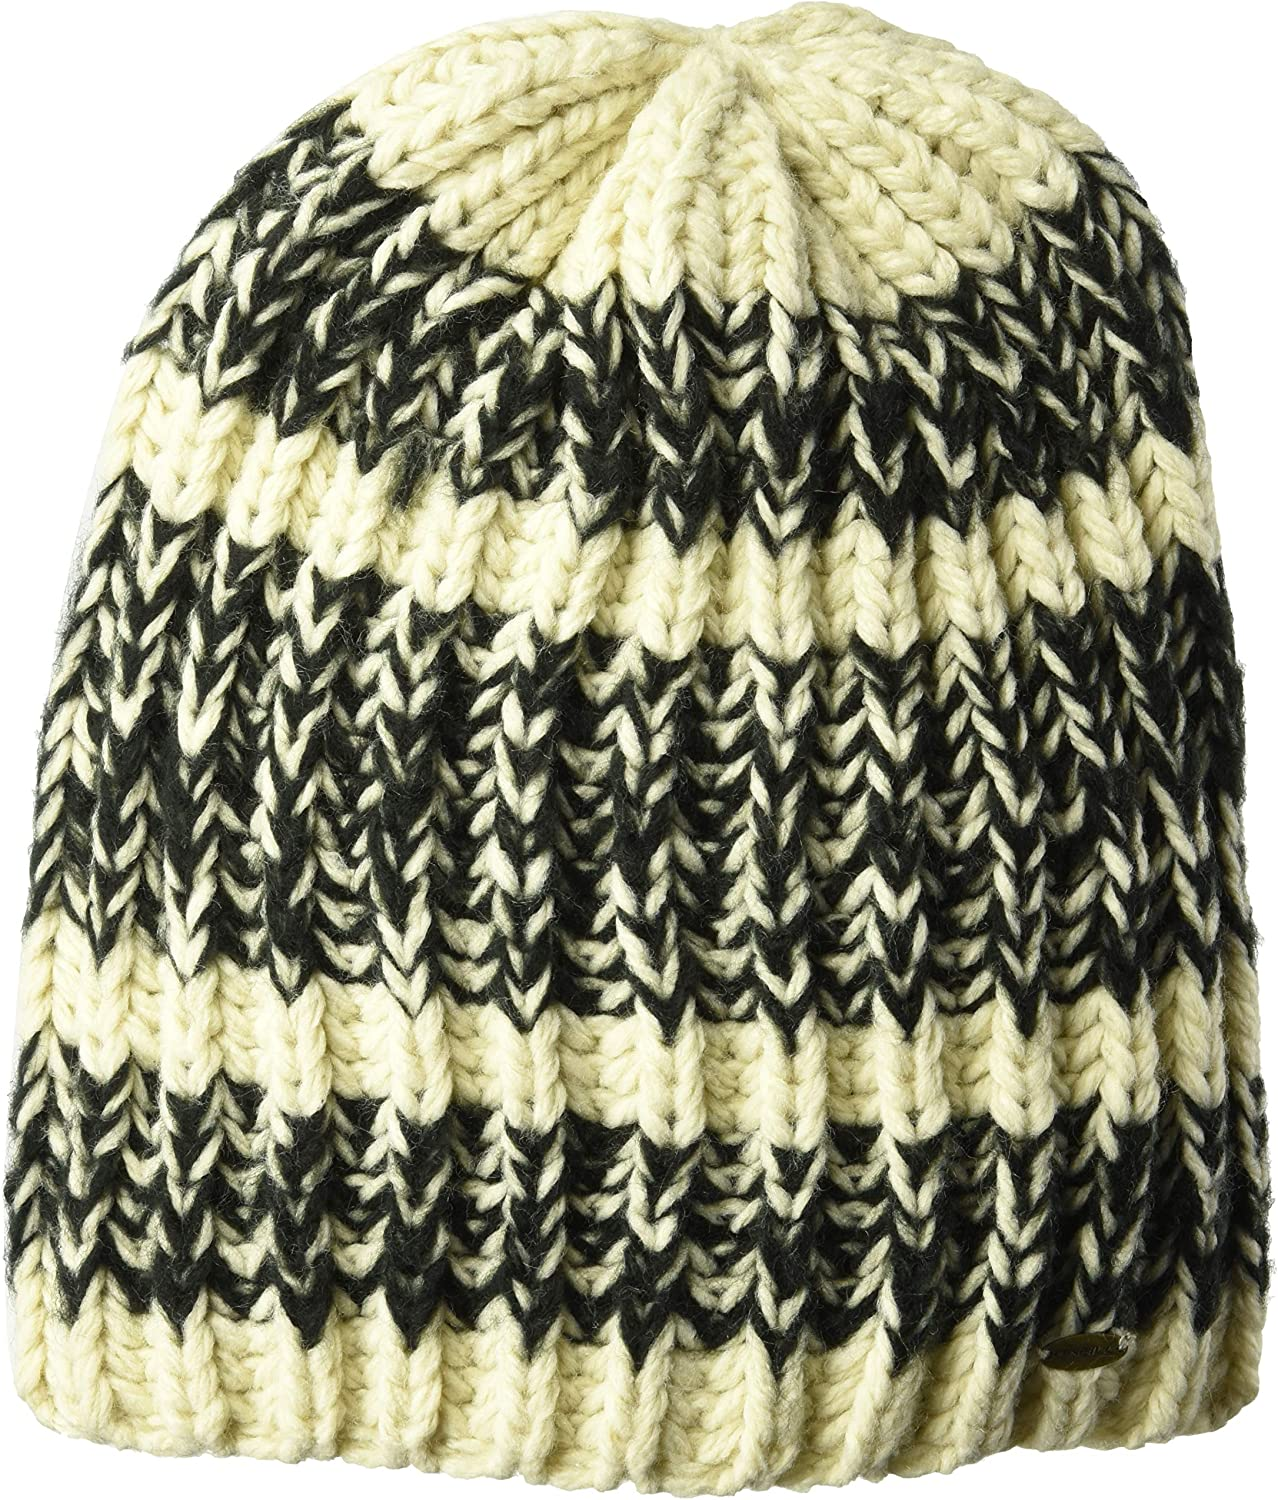 O'NEILL Women's Smores Multi Colored Knit Beanie, Tan, One Size